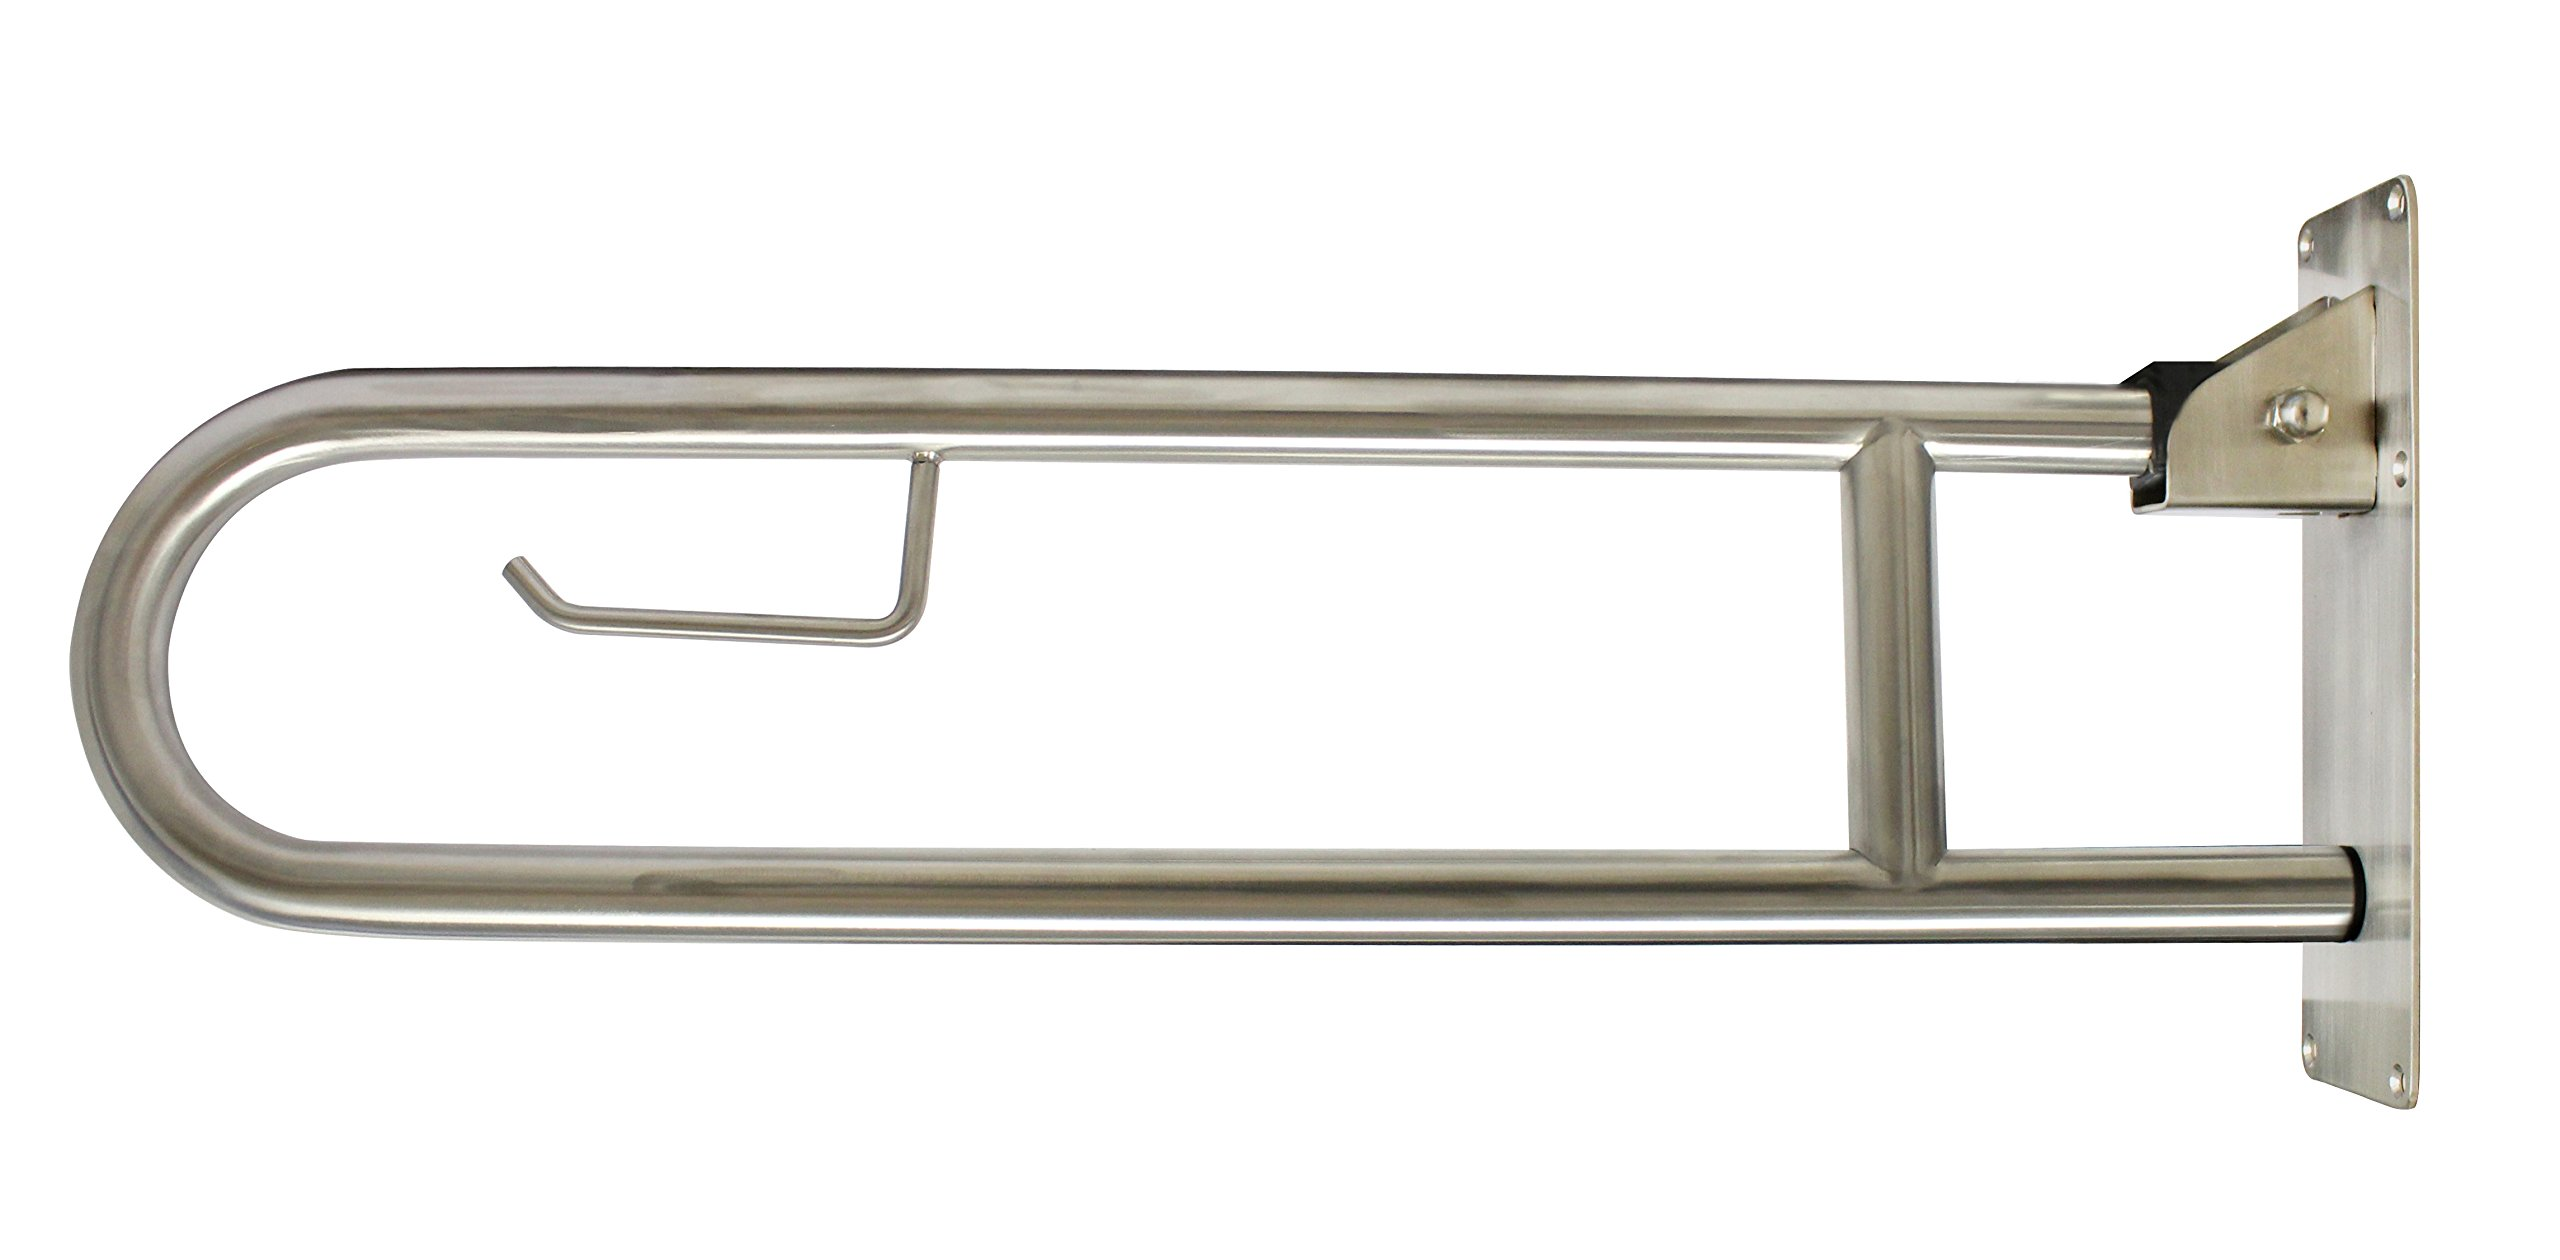 Keeney PP19701 Universal Swing Away/ Flip Up Stainless Steel Grab Bar with Built in Toilet Paper Holder, 30 x 7.75 x 1.94 inch Stainless Steel